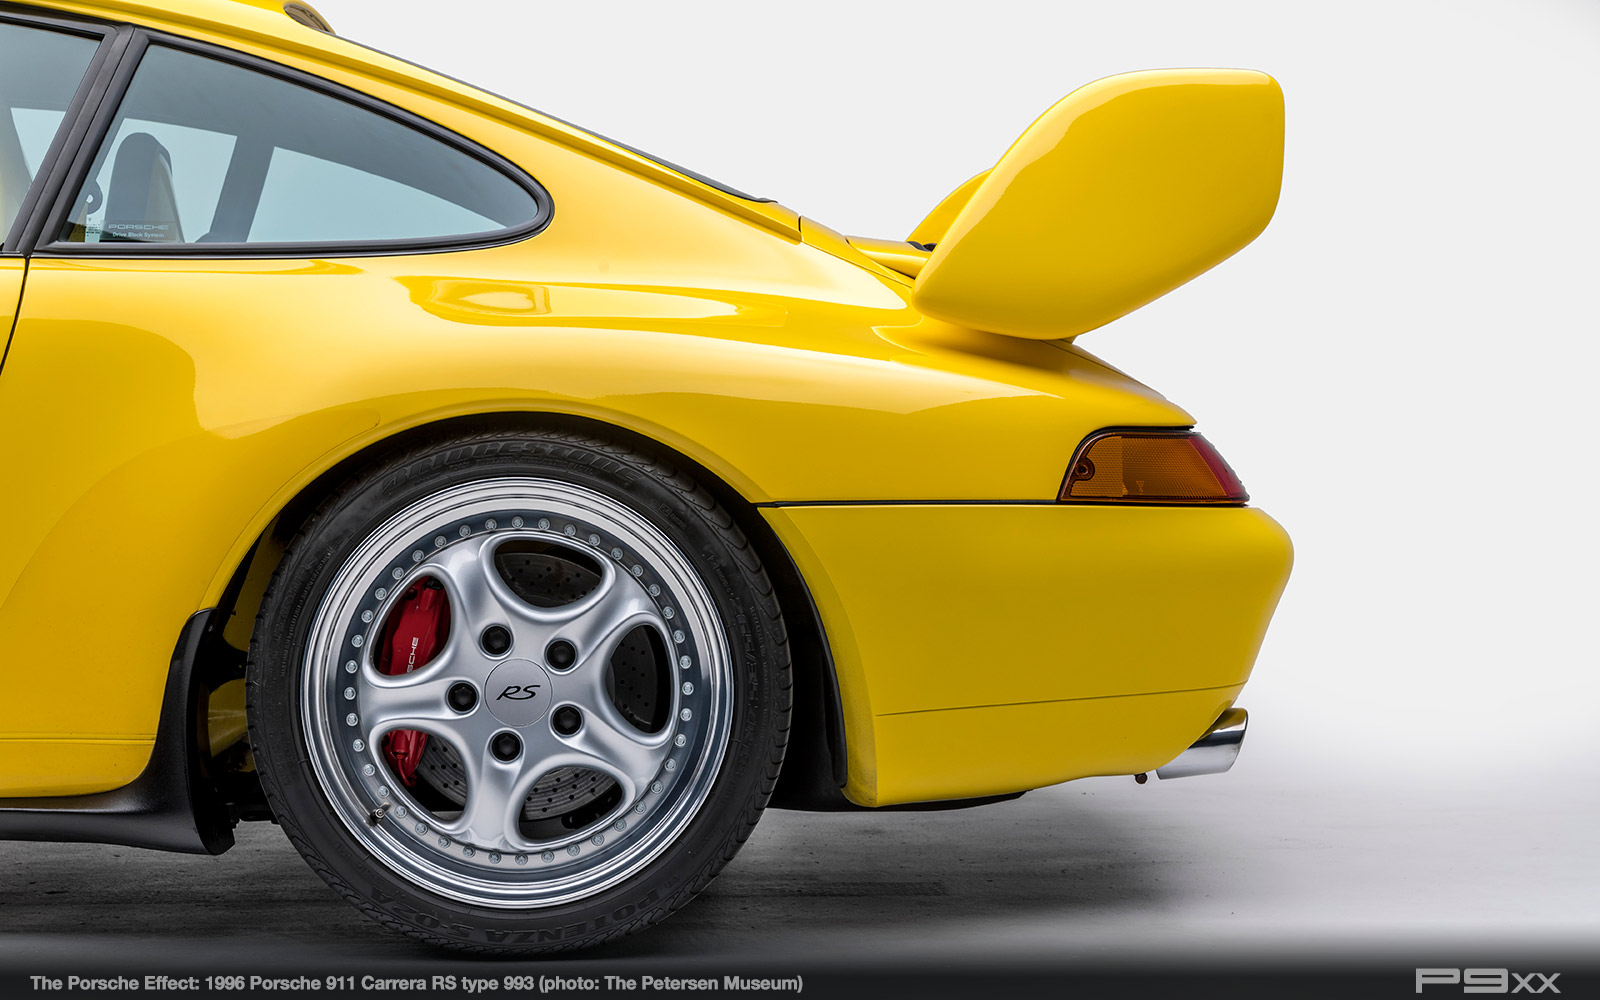 1996-911-Carrera-RS-993-Petersen-Automotive-Museum-The-Porsche-Effect292